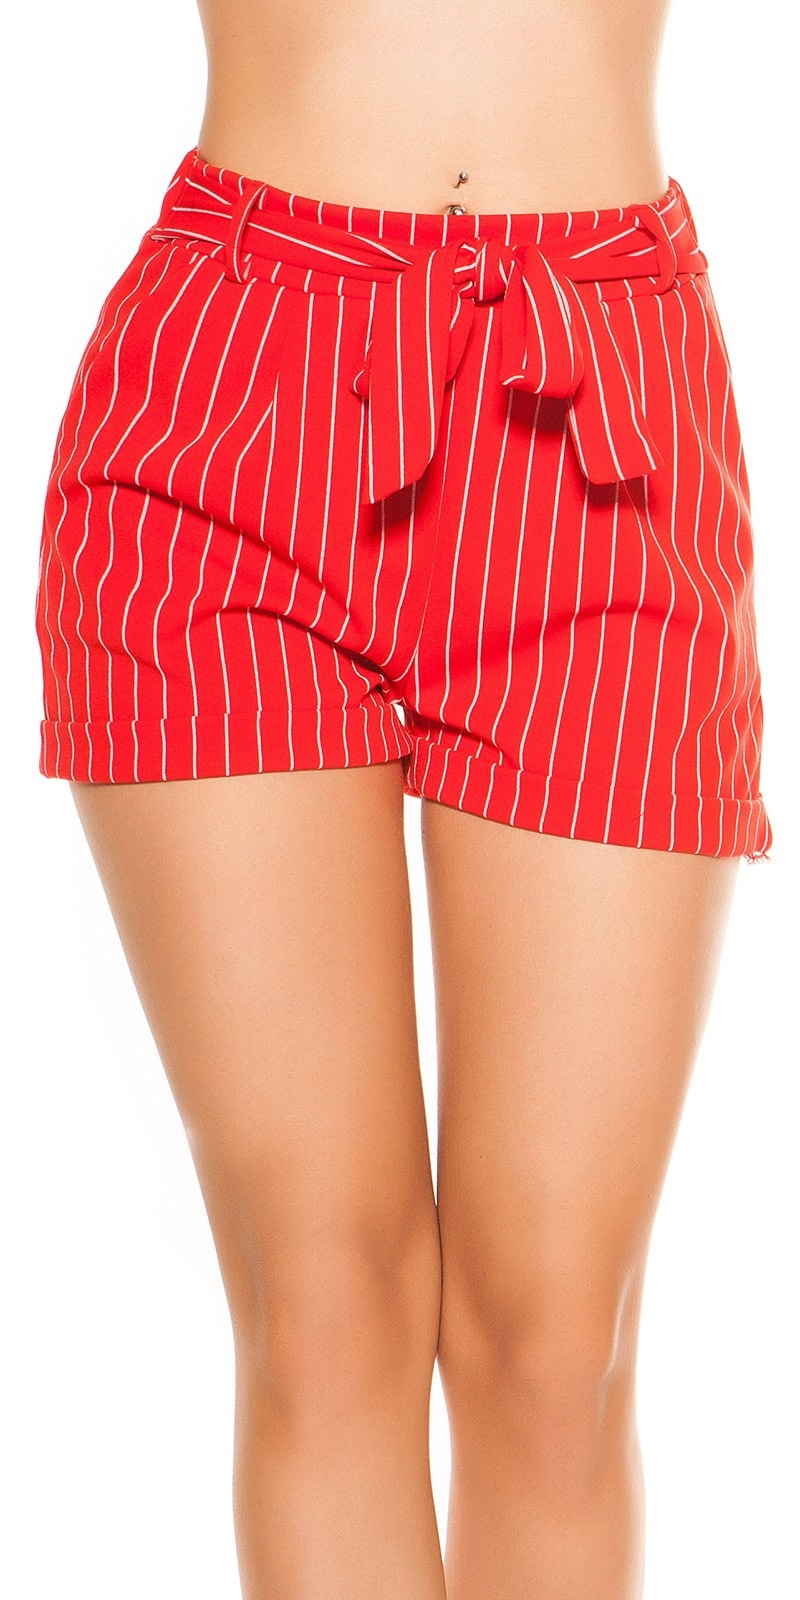 Sexy business look shorts striped with bow Red